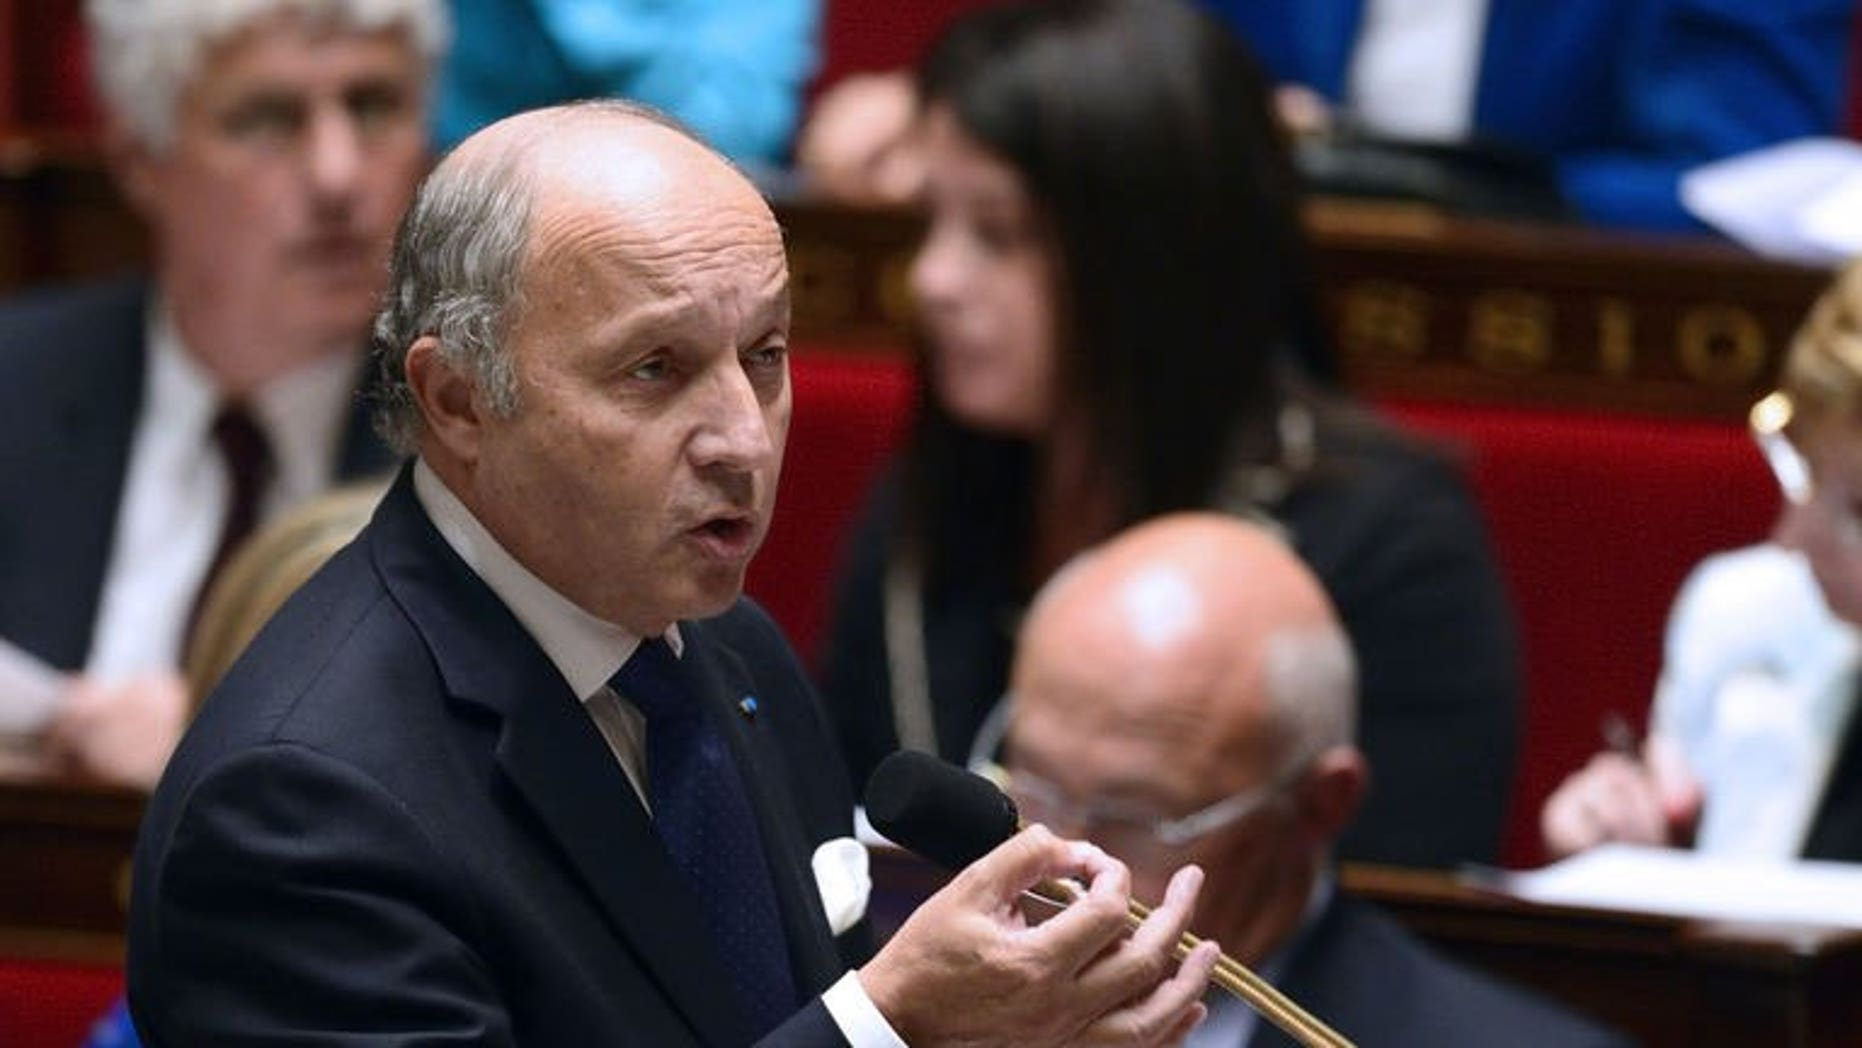 French Foreign Minister Laurent Fabius, pictured on September 11, 2013, will visit China to discuss Syria on Sunday, his ministry said, amid ongoing diplomatic efforts to end the crisis in the war-torn country.